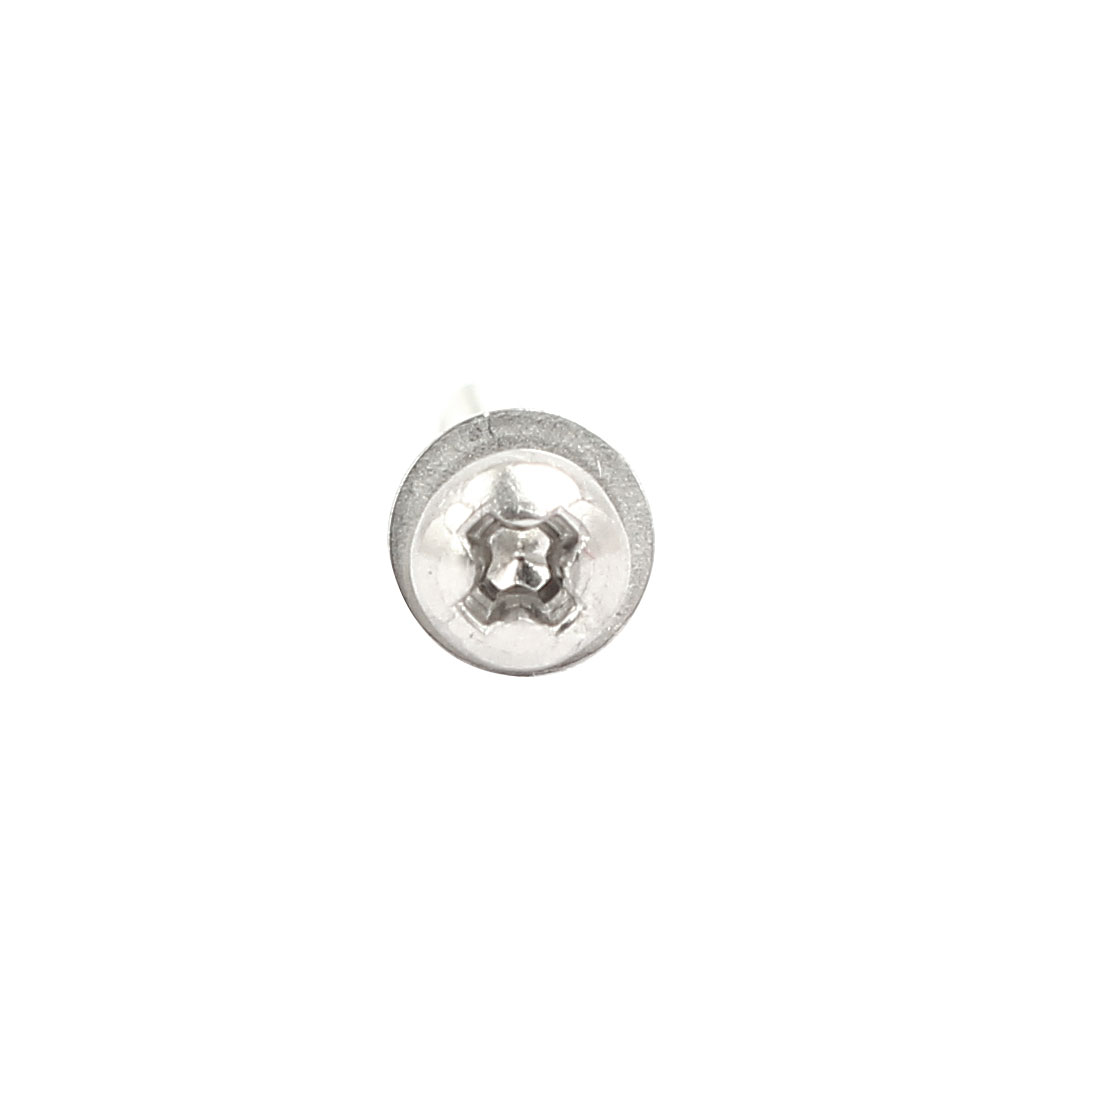 M2x16mm 304 Stainless Steel Phillips Pan Head Bolt Screw Nut w Washer 18 Sets - image 3 of 4